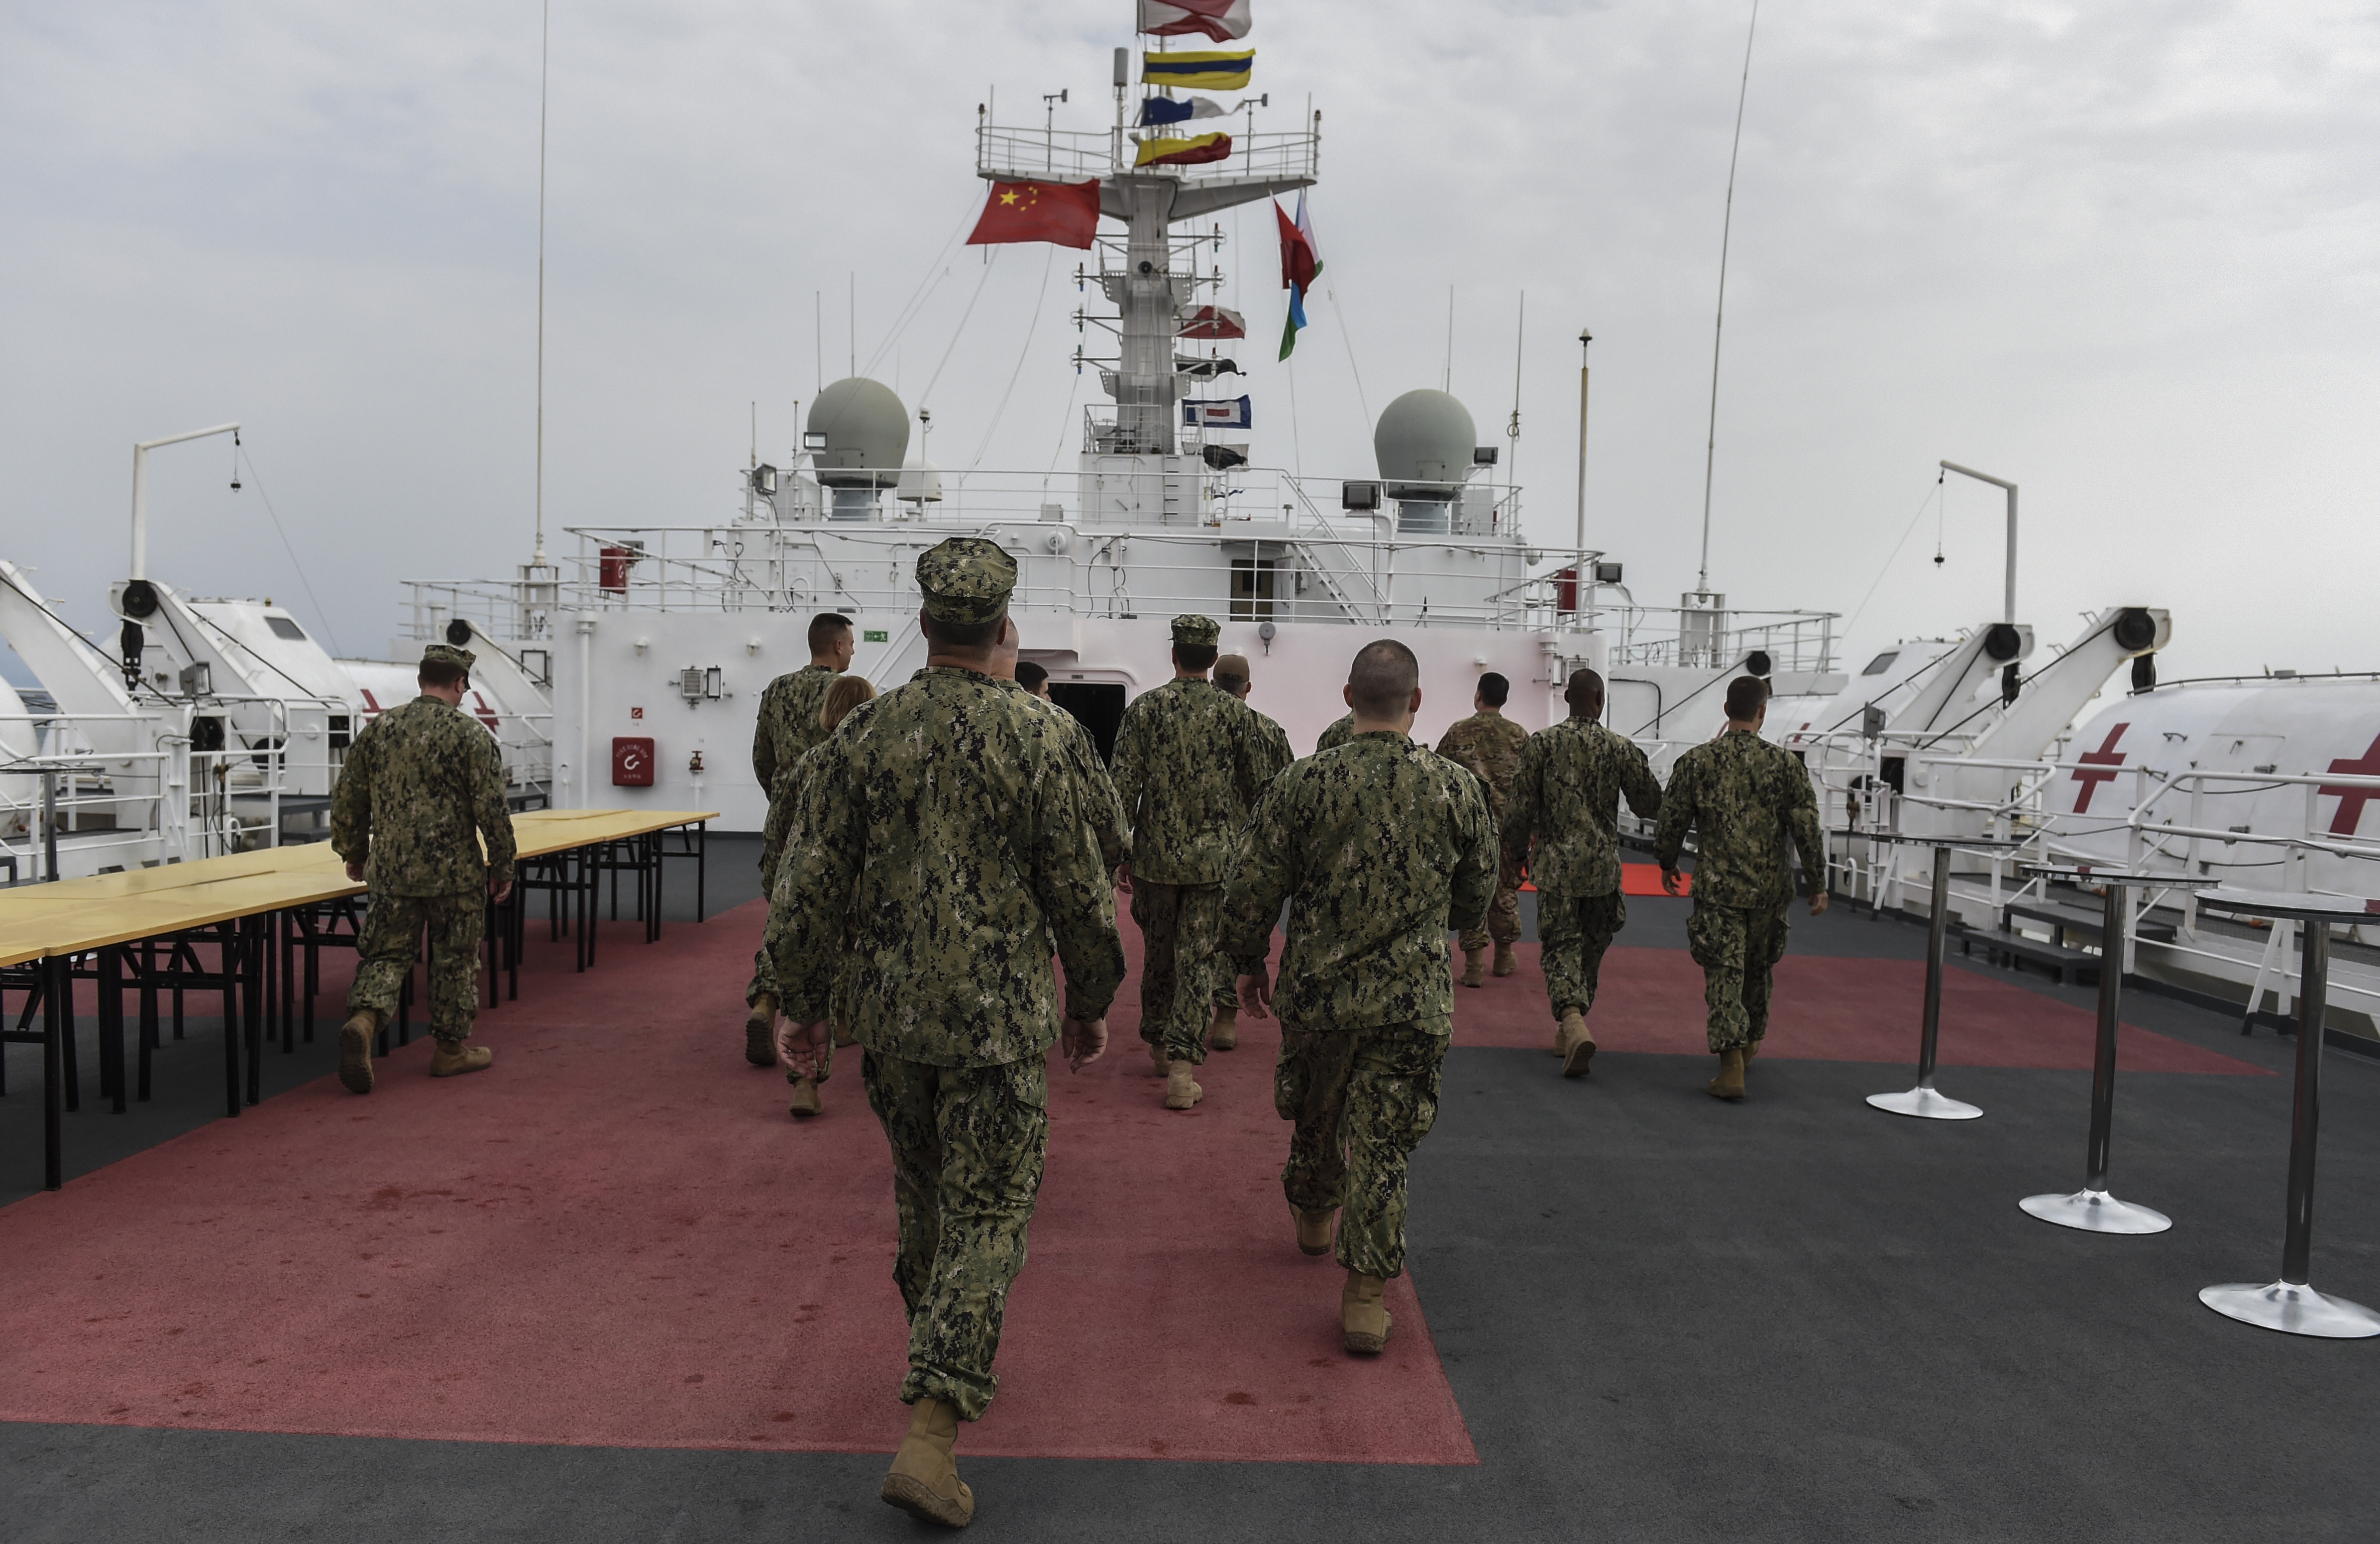 U.S. Navy Sailors assigned to Camp Lemonnier walk on the deck of the Chinese hospital ship, Ark Peace, in the Port of Djibouti, August 28, 2017. Medical personnel from Camp Lemonnier visited the Ark Peace and received a tour from Chinese medical personnel to highlight the ship's capabilities. (U.S. Air Force photo by Staff Sgt. Eboni Prince)